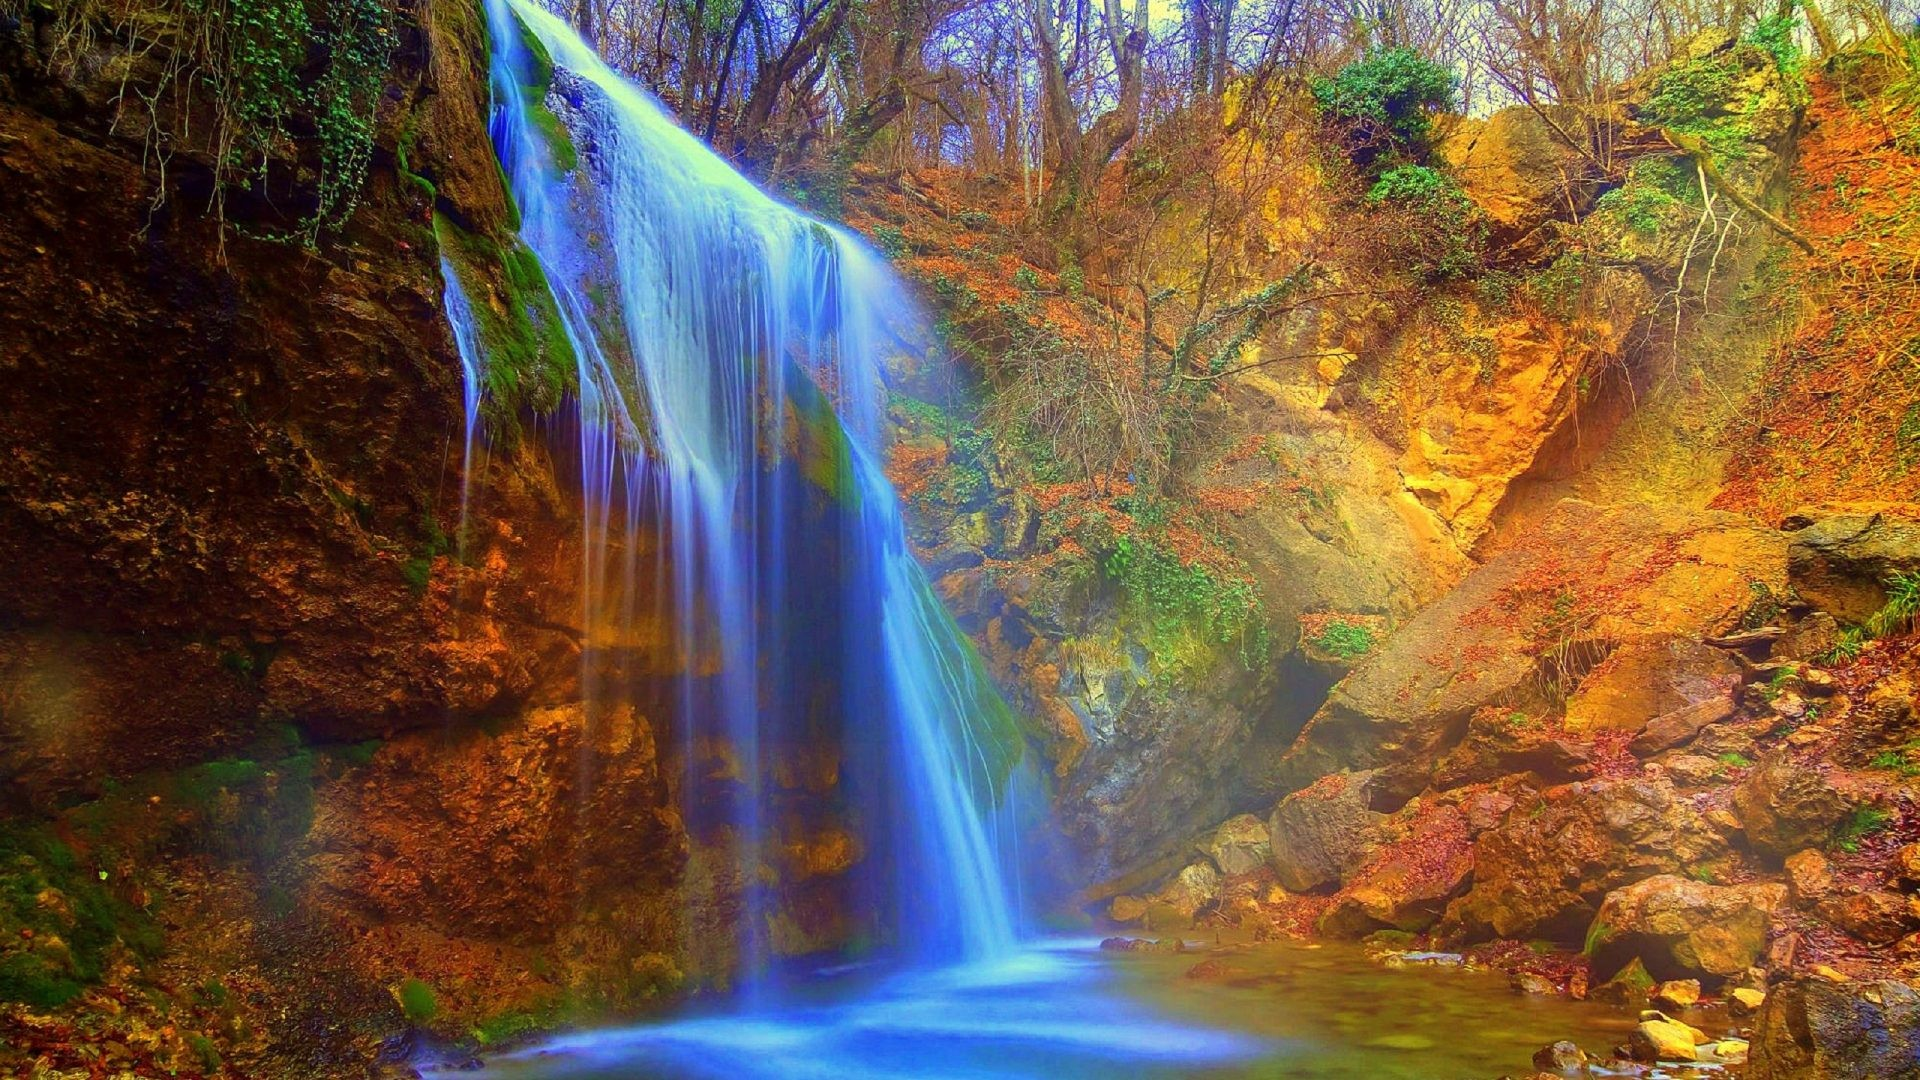 Popular Screensavers And Wallpaper 47 Images: Waterfall Screensavers Wallpapers (47+ Images